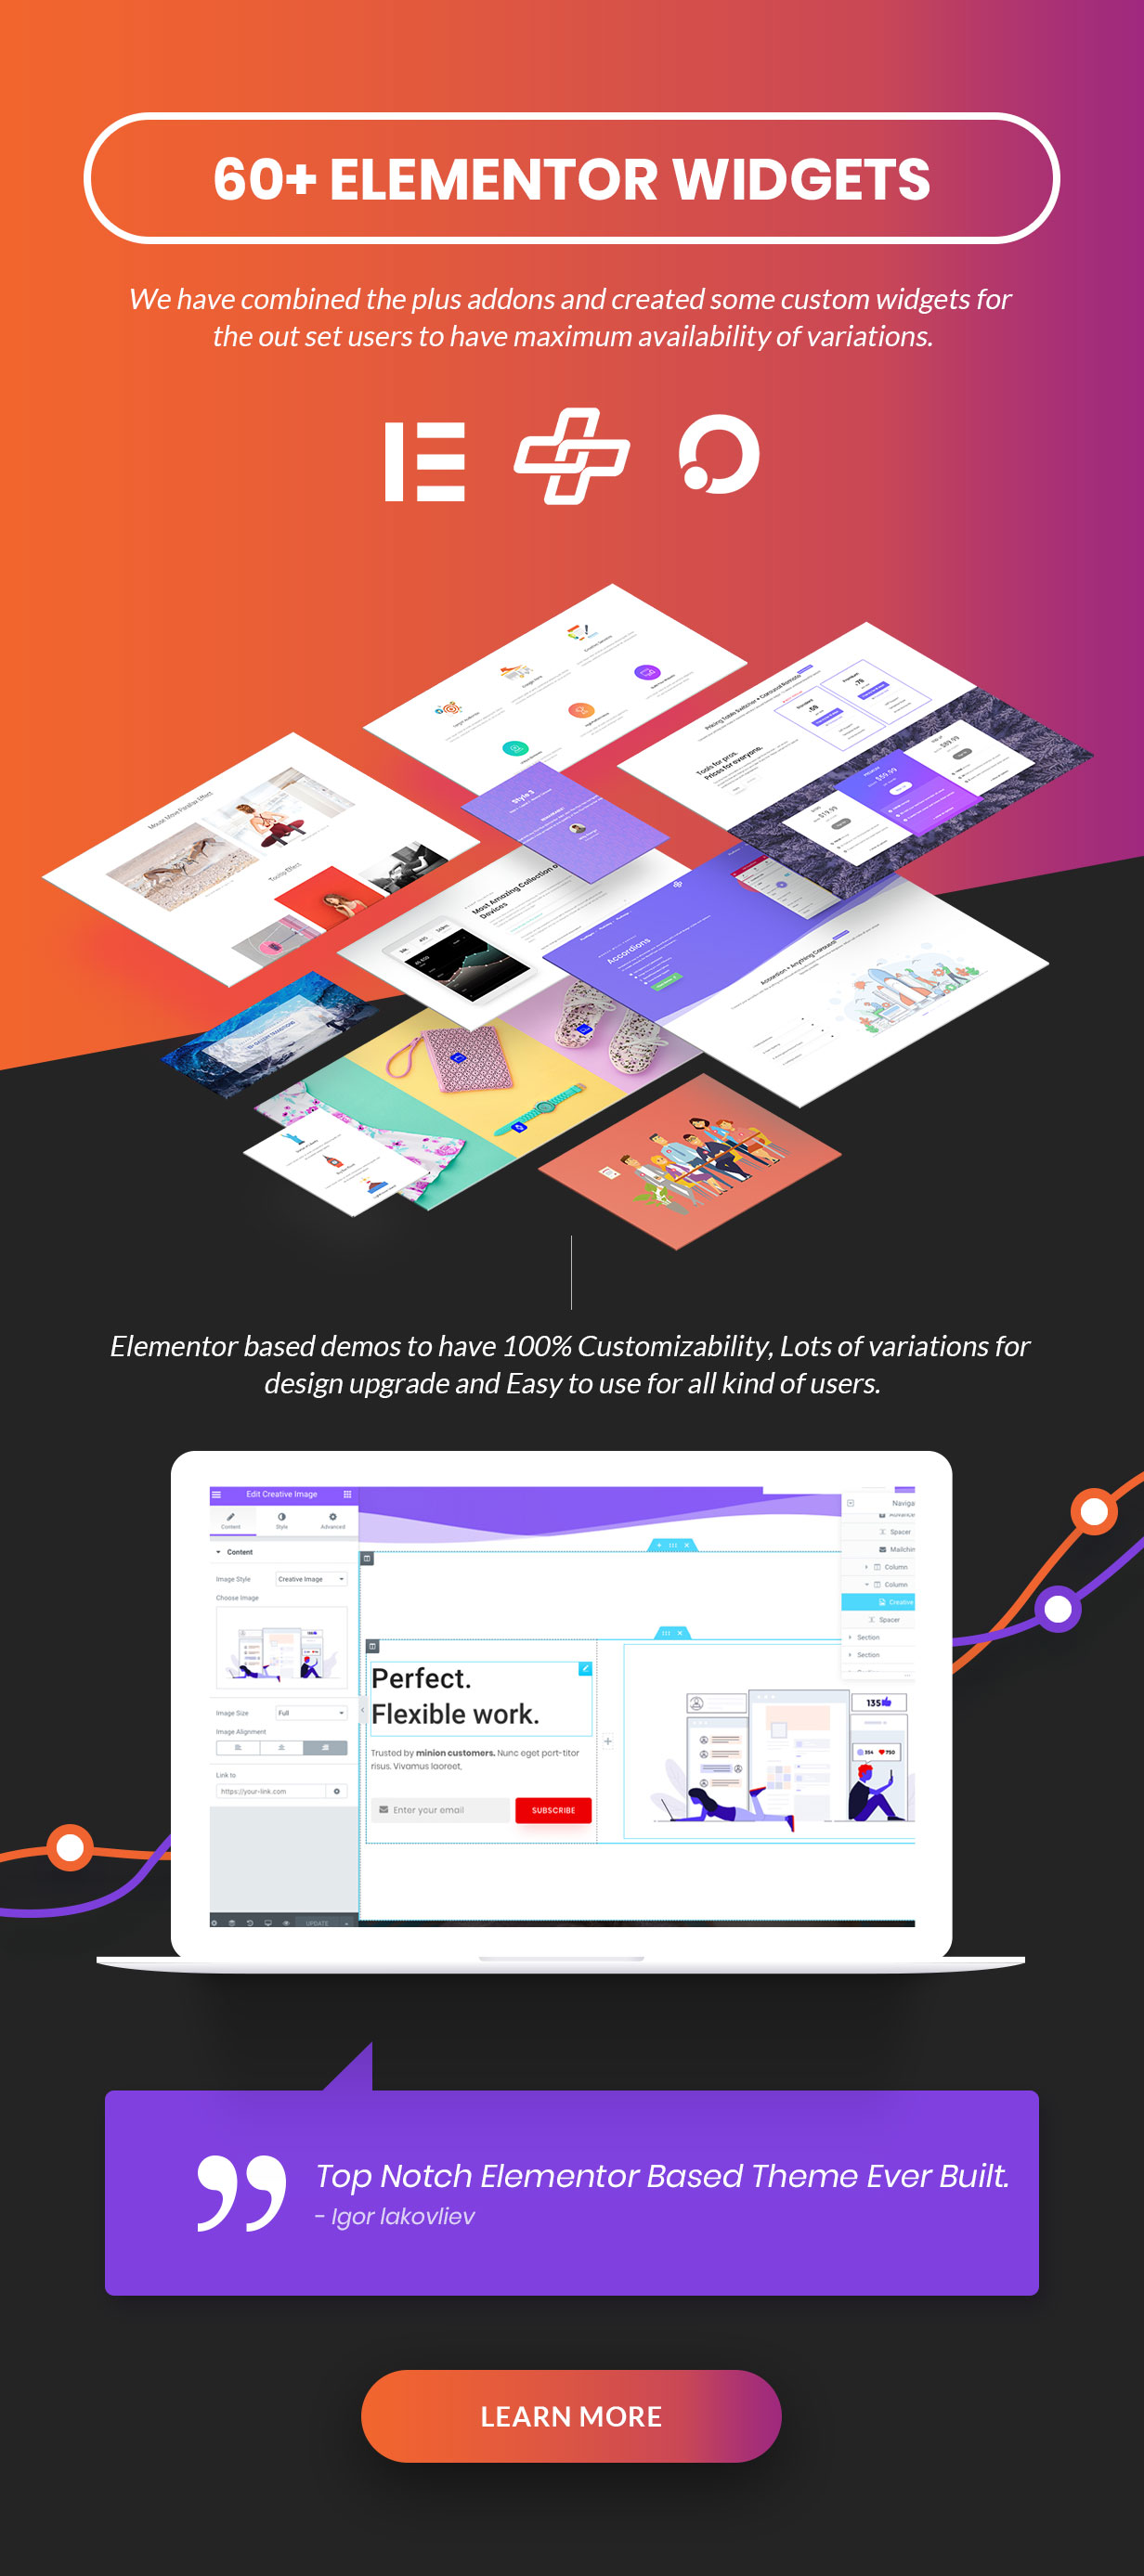 The Outset - SaaS, App, Product & Tech Software Startup Theme - 7